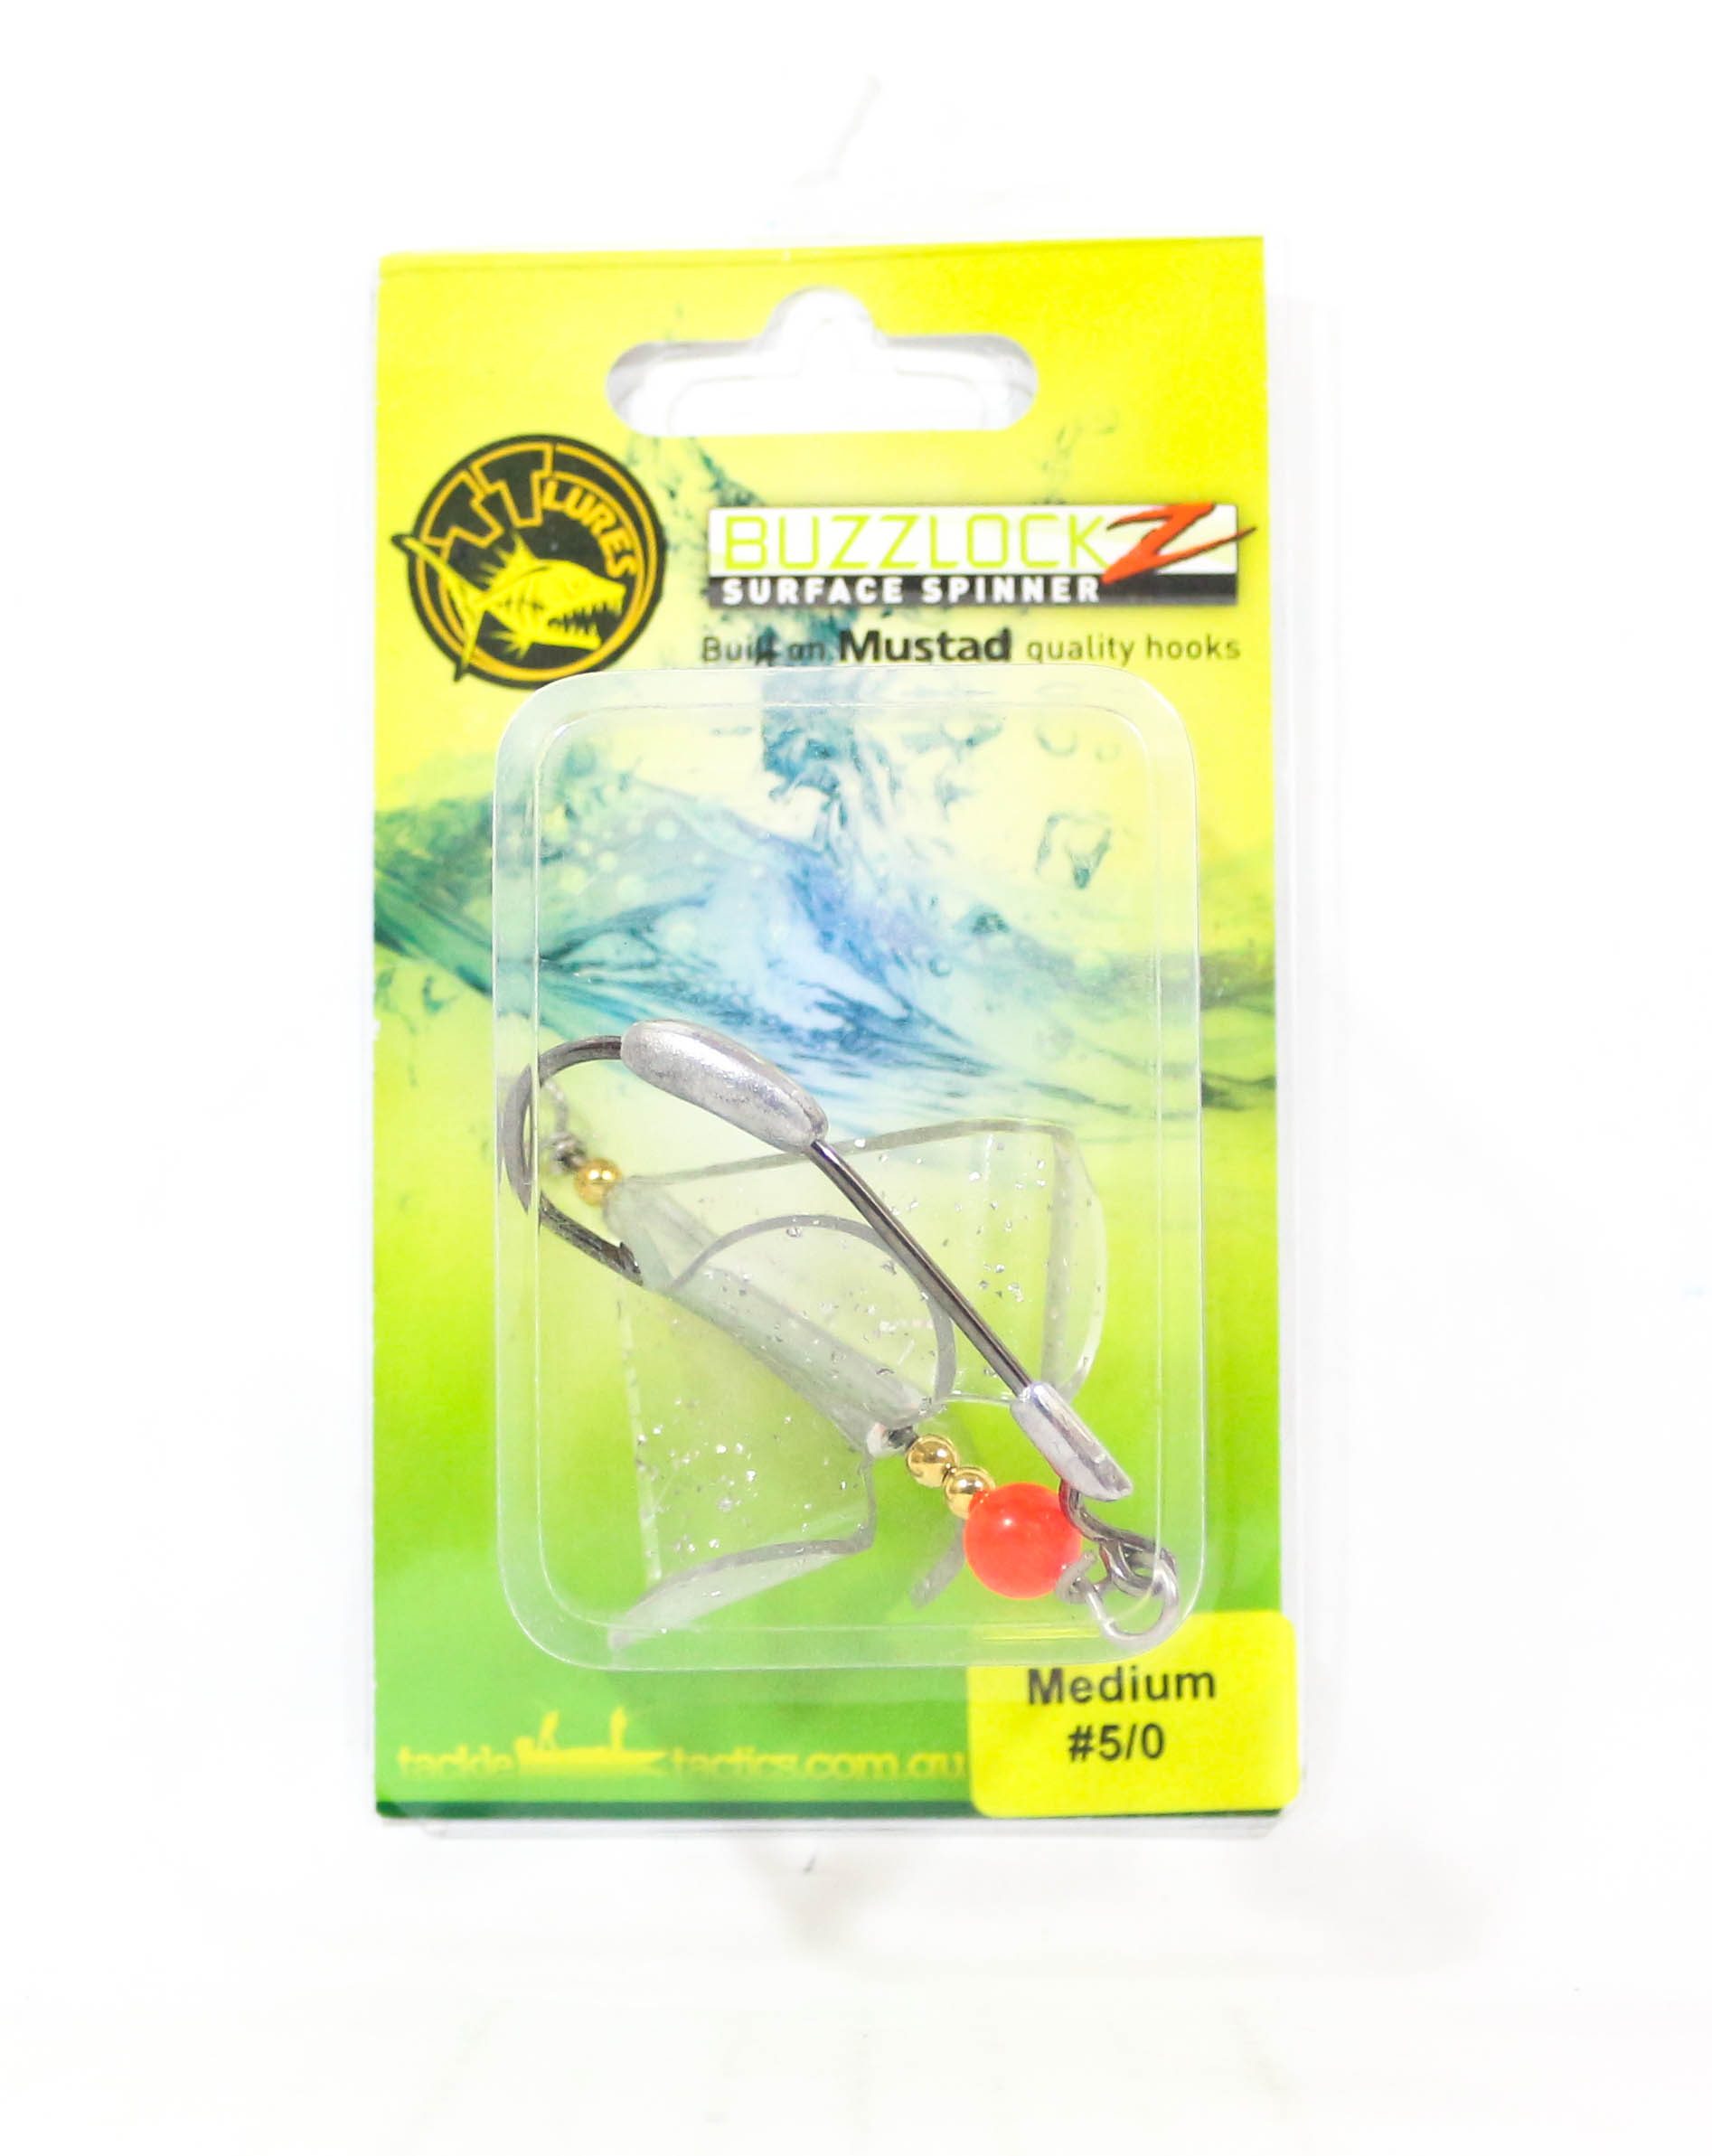 Tackle Tactics TT Buzzlockz Medium 5/0 1 per pack (6146)